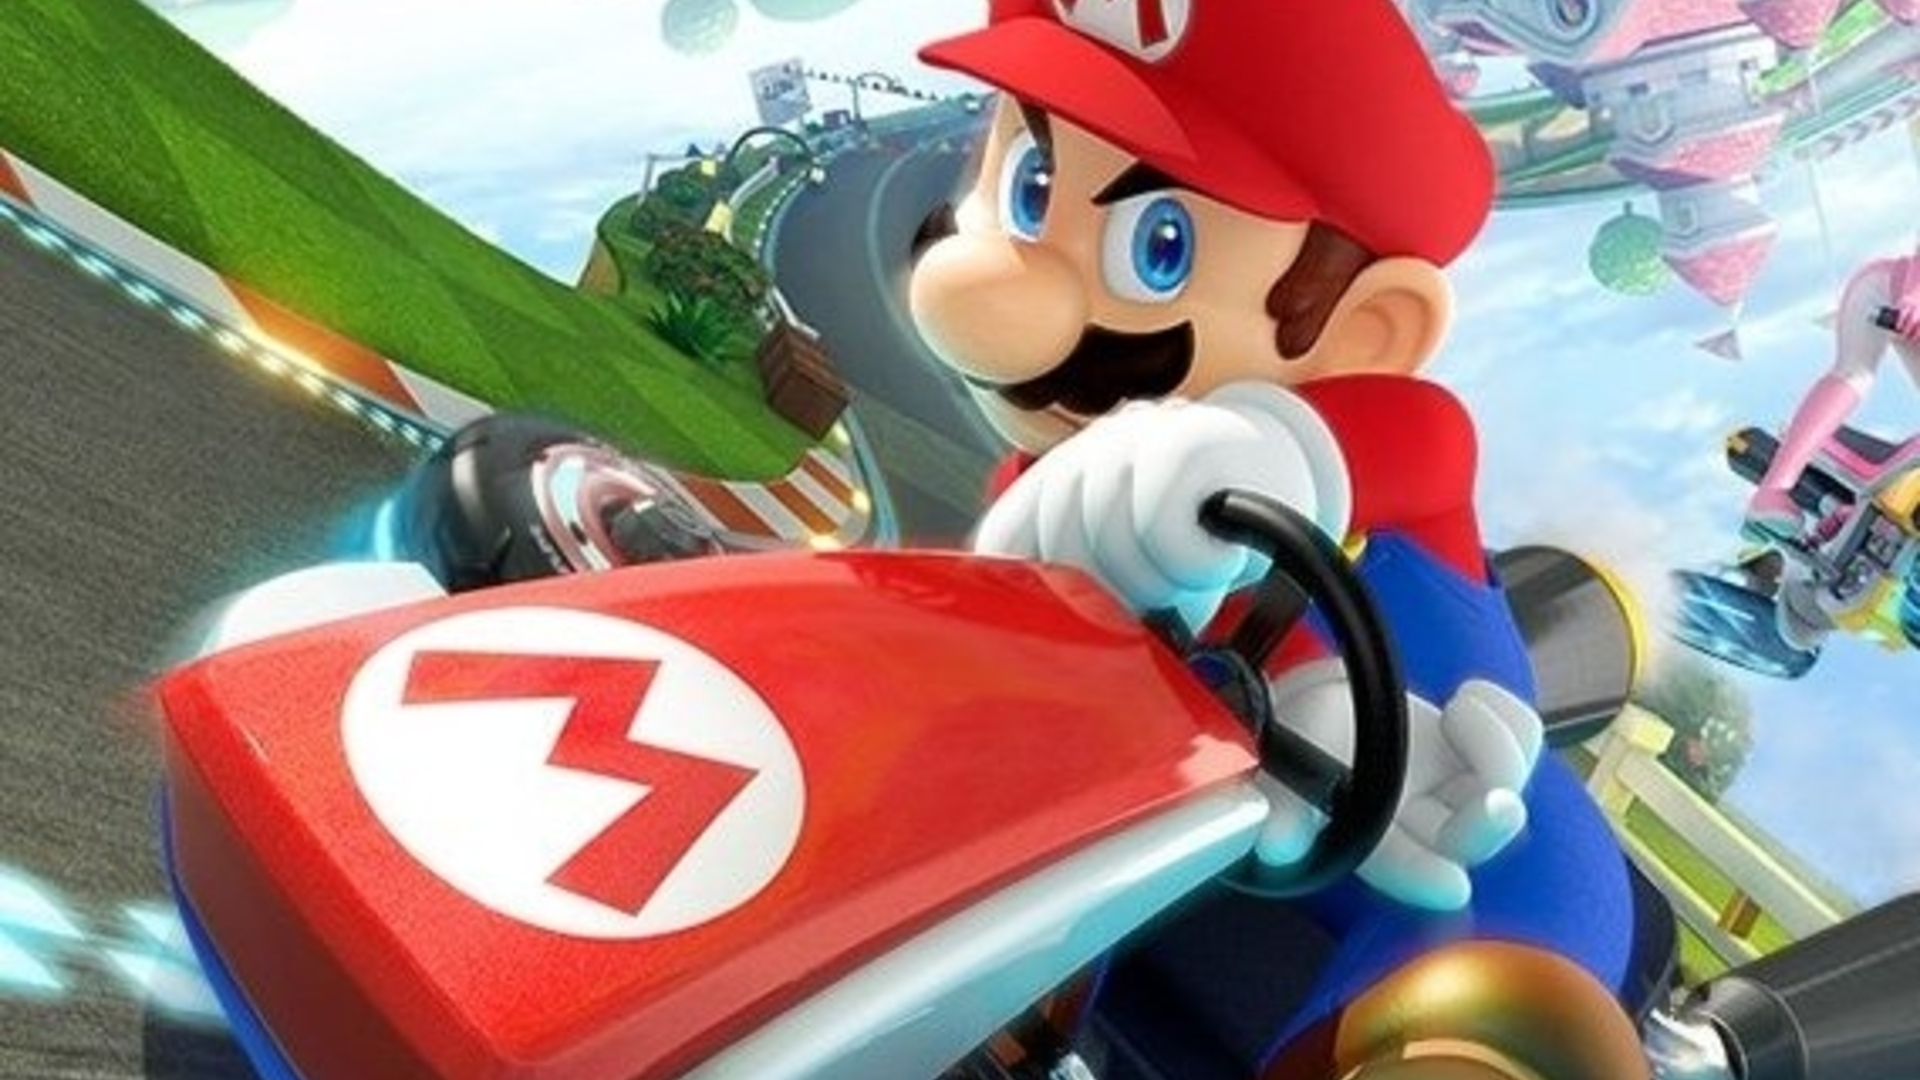 Mario Kart 8 guide: Tips, tricks and everything you need to know about the  Deluxe edition on Switch • Page 1 • Eurogamer.net